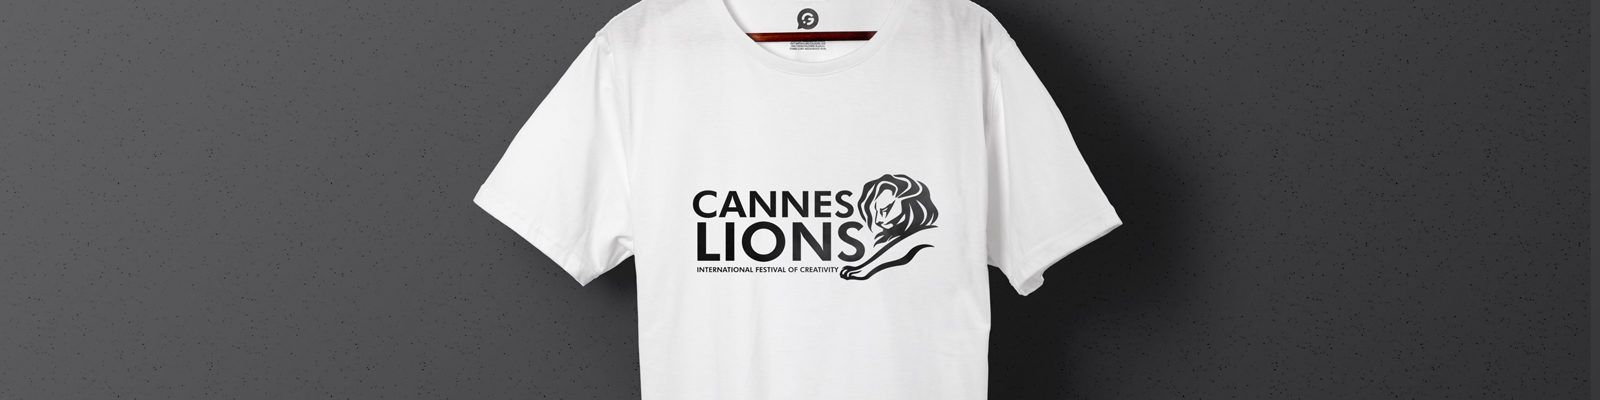 Promotional Merchandise and Printed Uniforms for Cannes Lions Event - Header Image